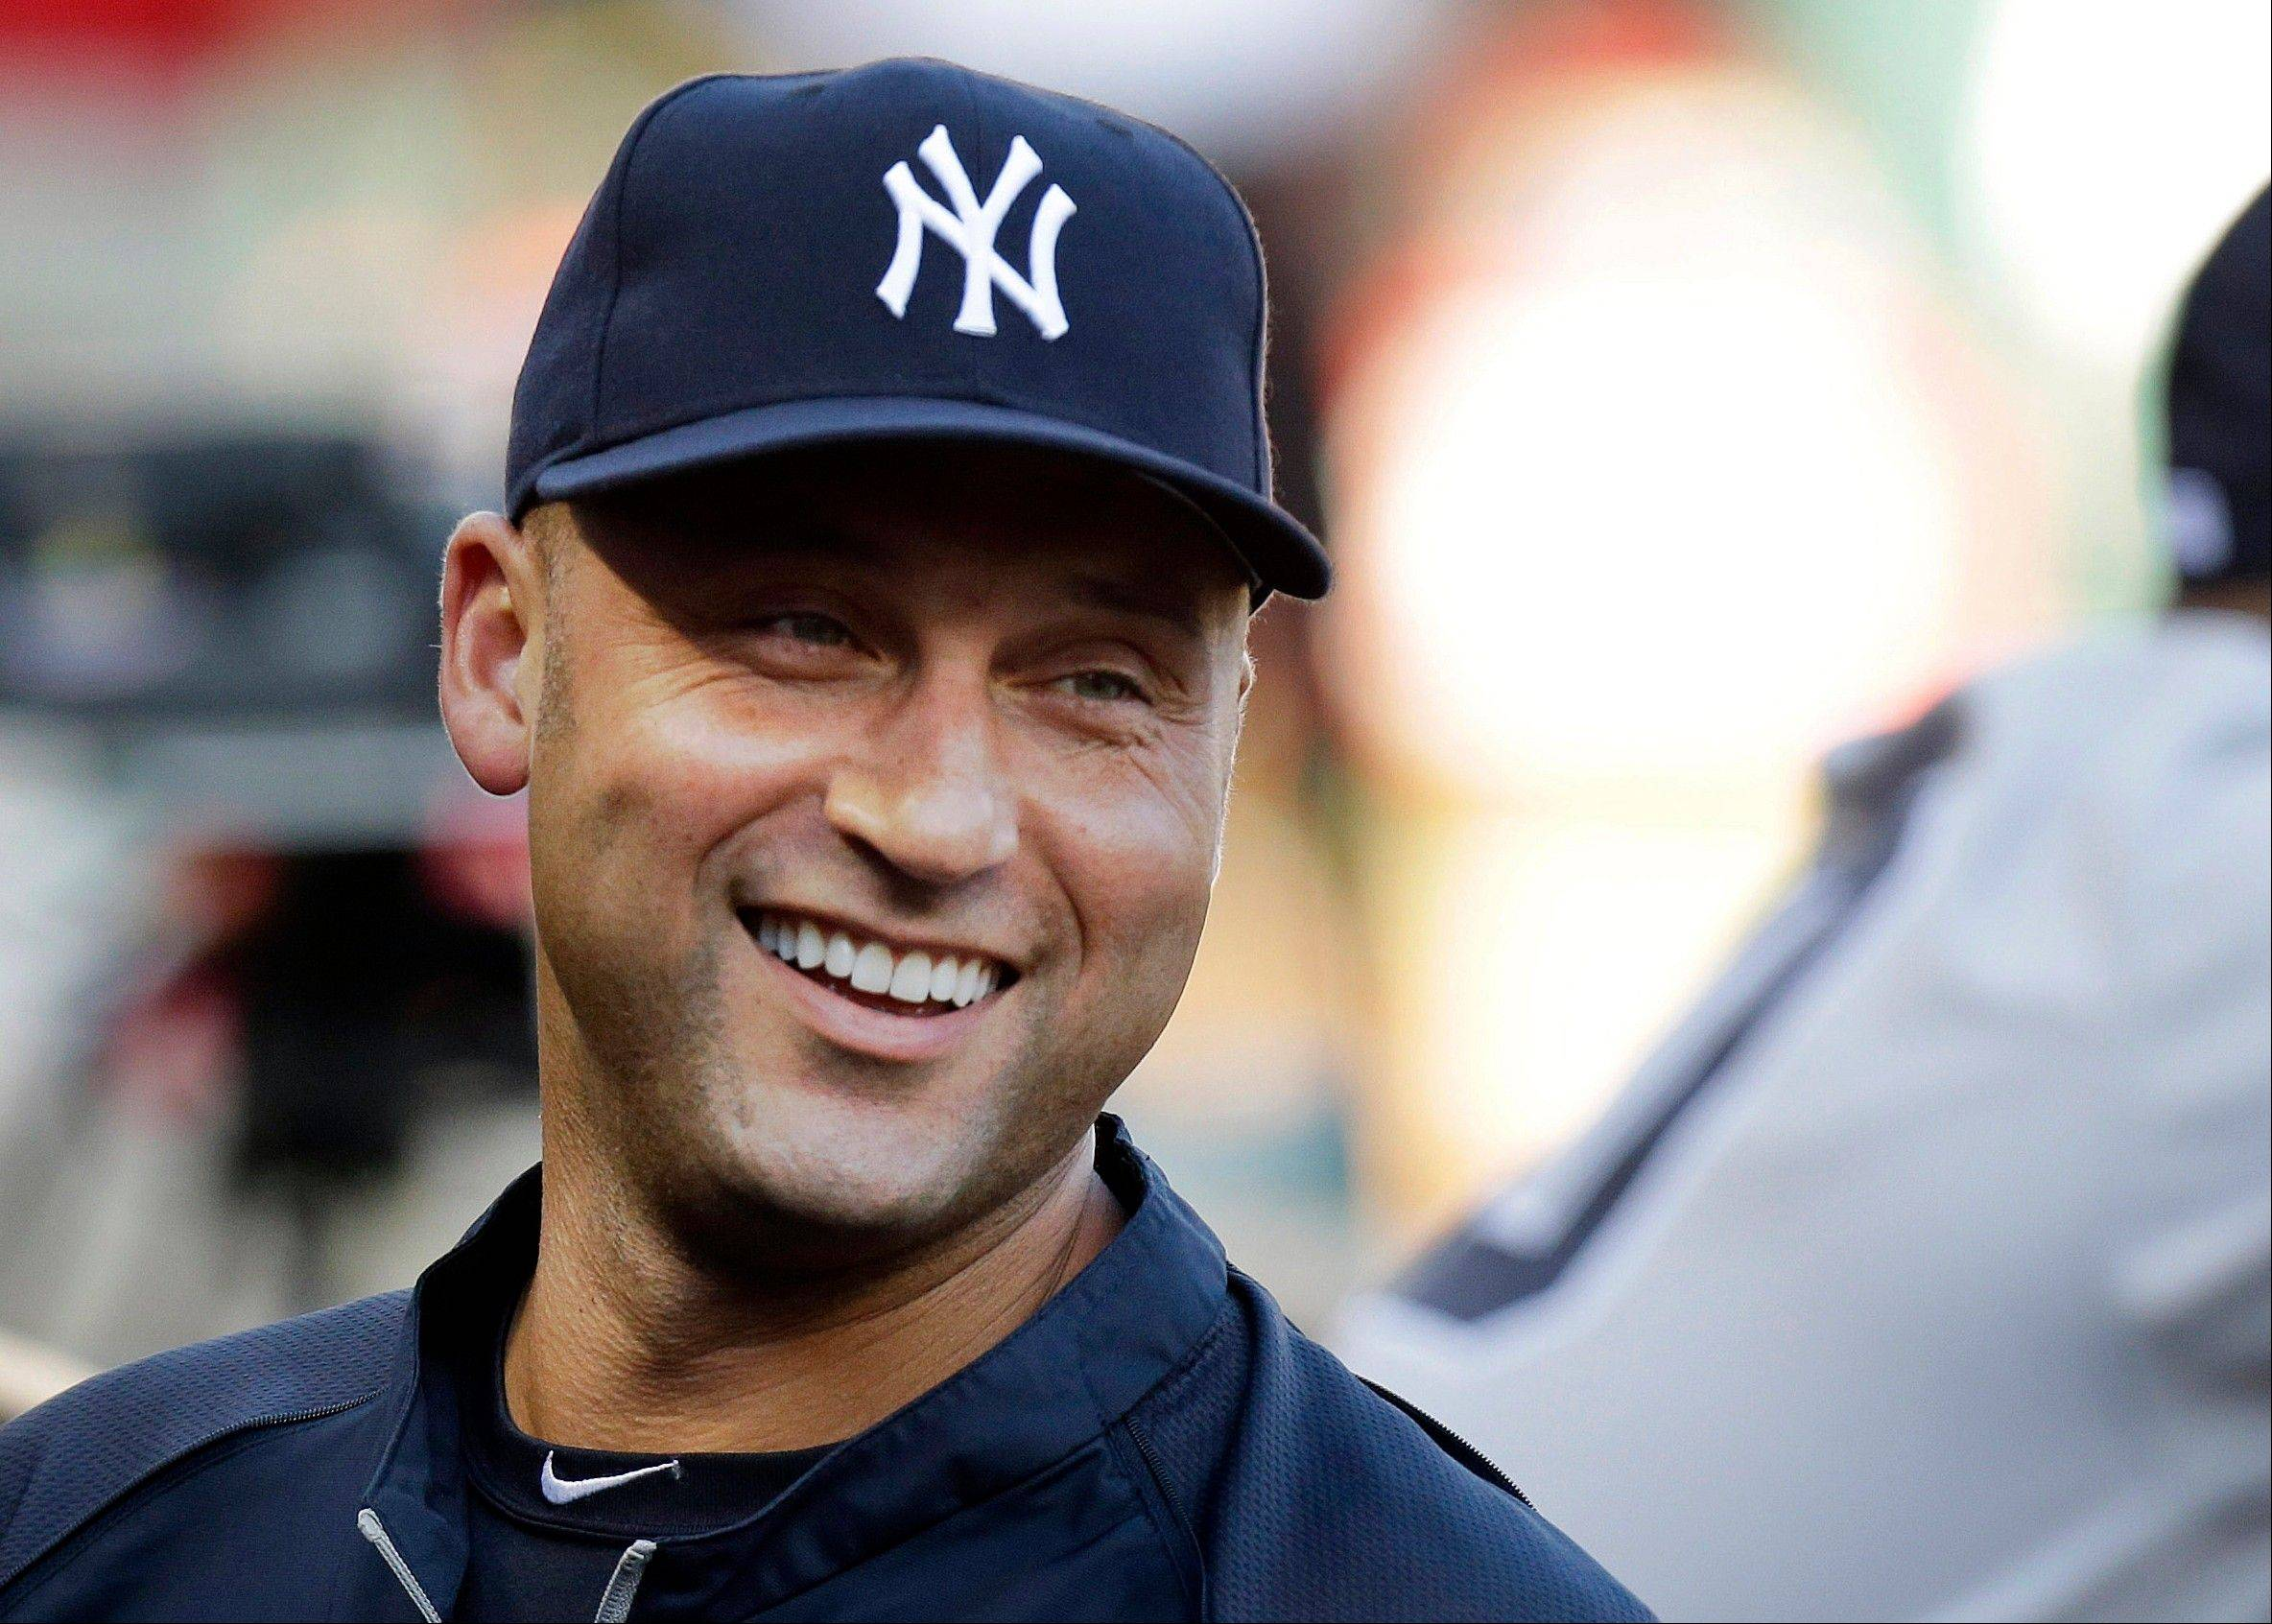 Yankees shortstop Derek Jeter wound up hitting .190 (12 for 63) with one homer and seven RBIs in a 2013 season marred by injuries.